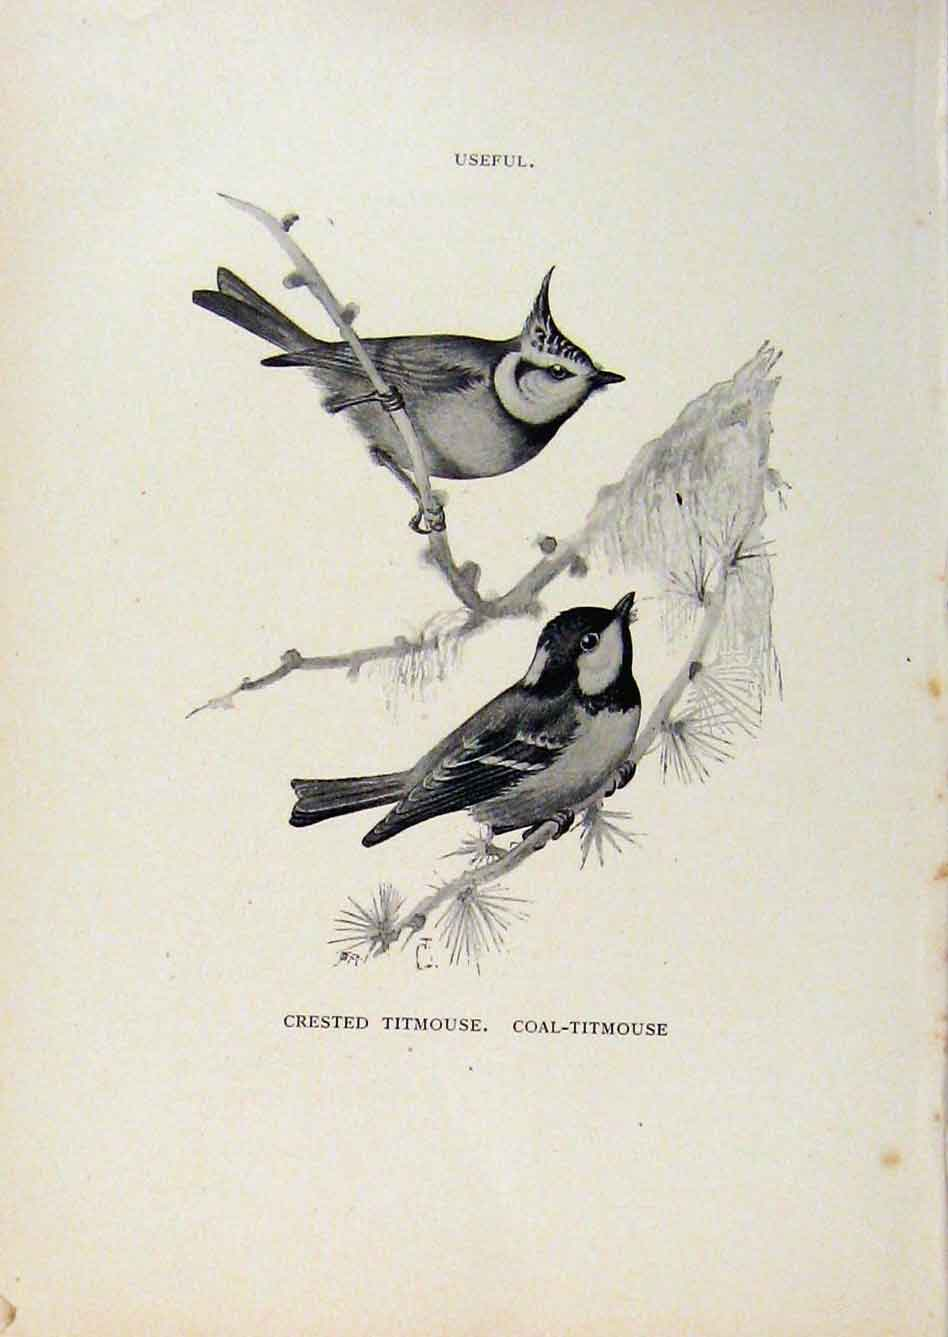 Print Birds Useful And Harmful Crested And Coal Titmouse 408291 Old Original